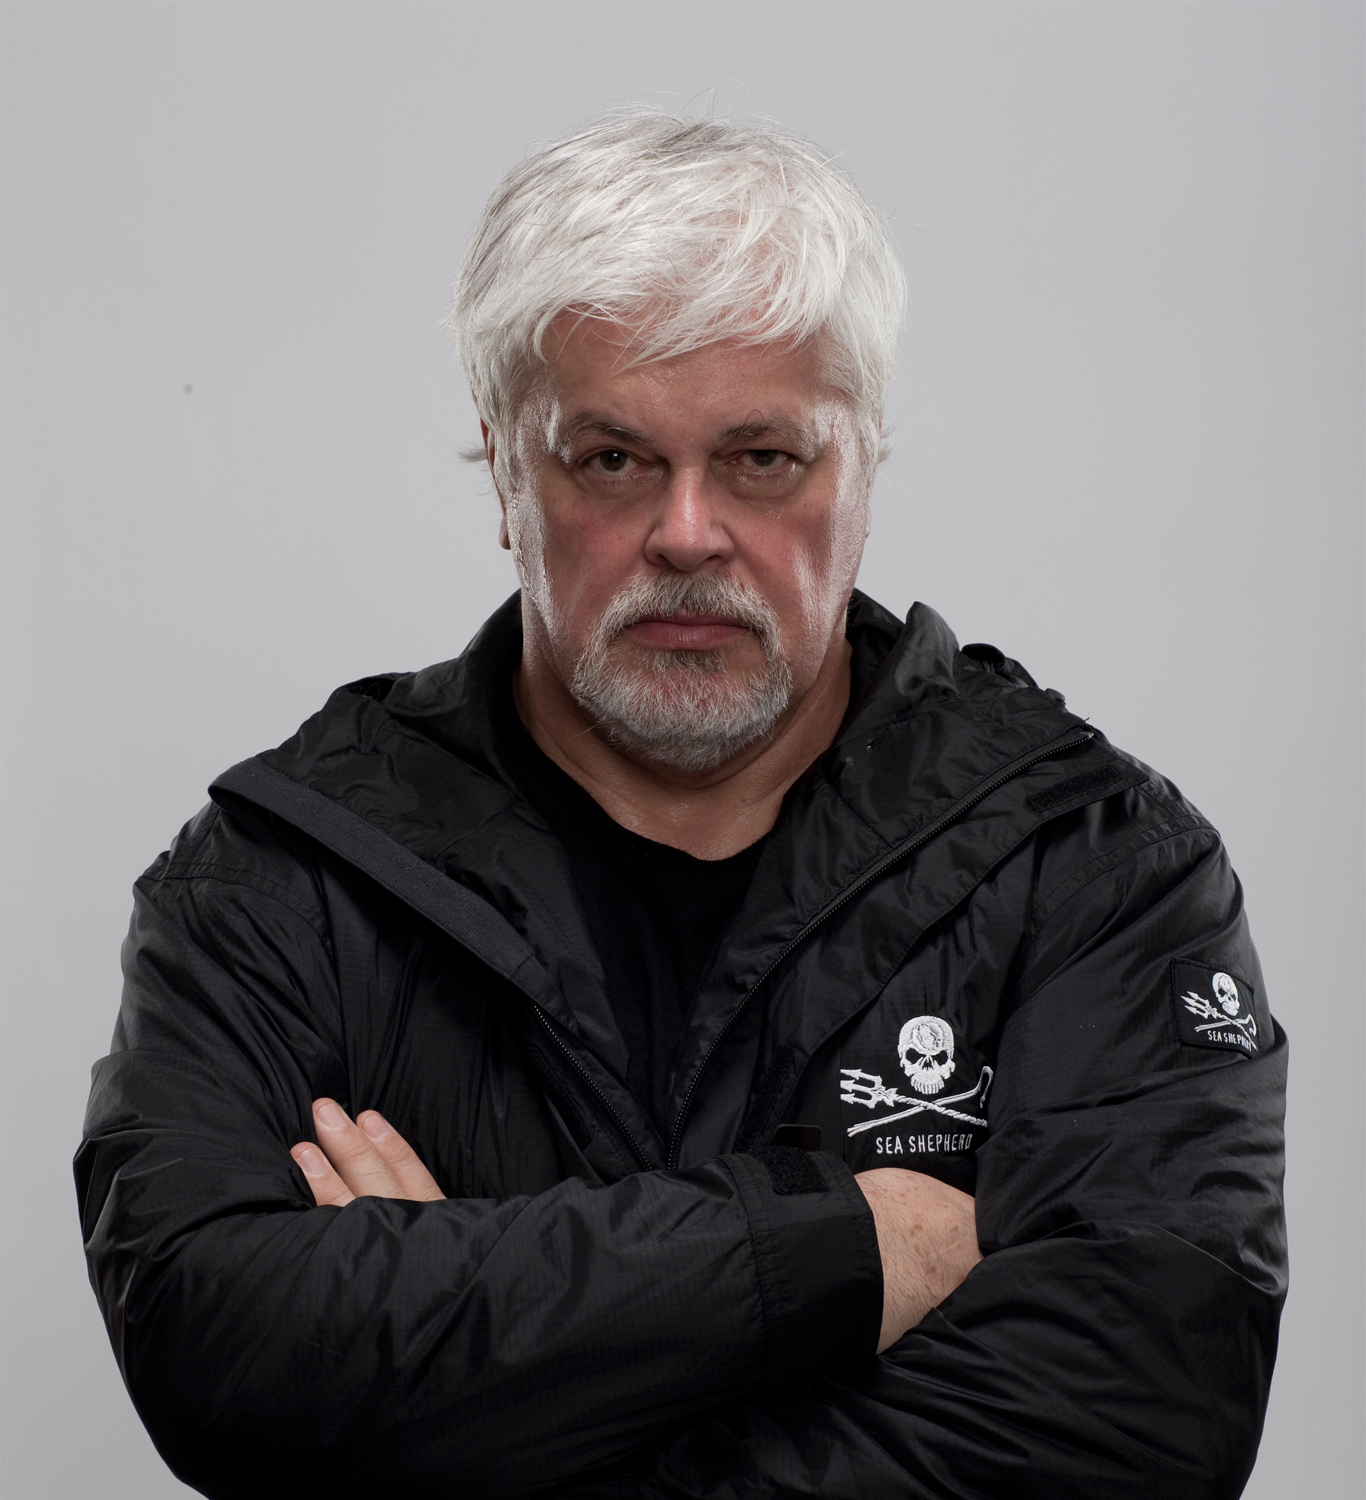 http://blog.surf-prevention.com/wp-content/uploads/2012/05/paul-watson-sea-shepherd.jpg